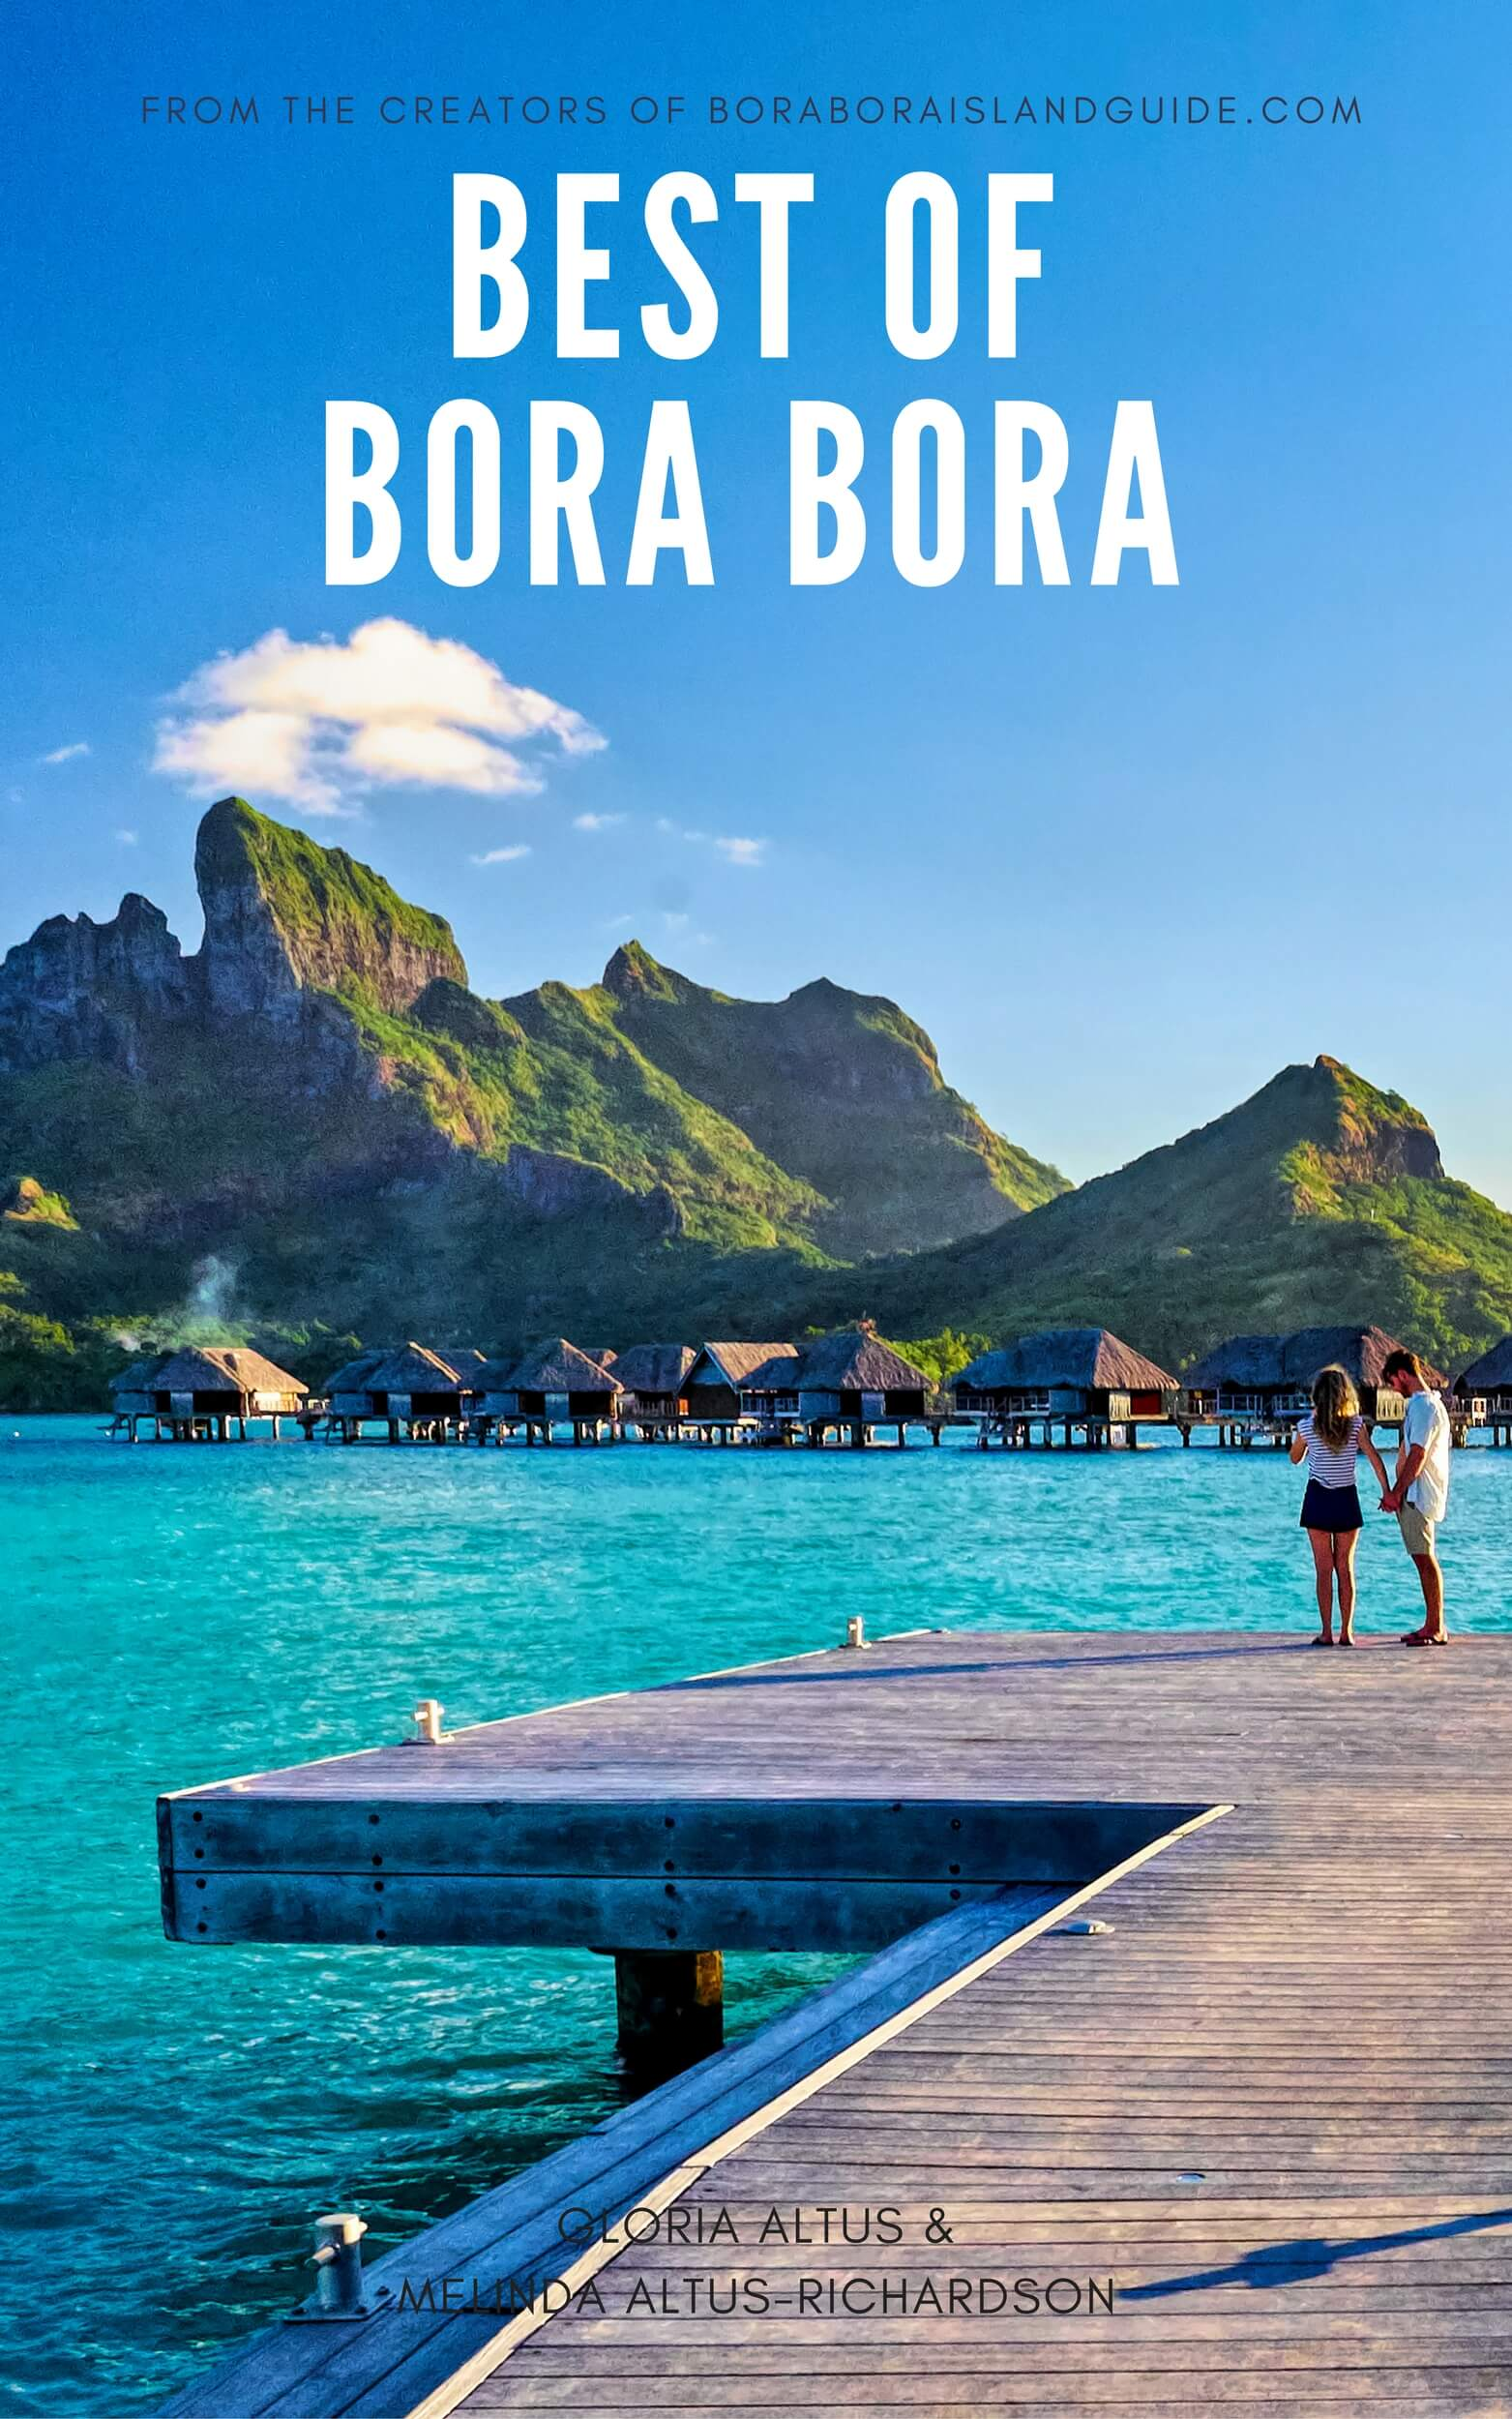 Bora Bora Island >> Bora Bora Island Guide Beach Vacation In Tropical Tahiti Paradise